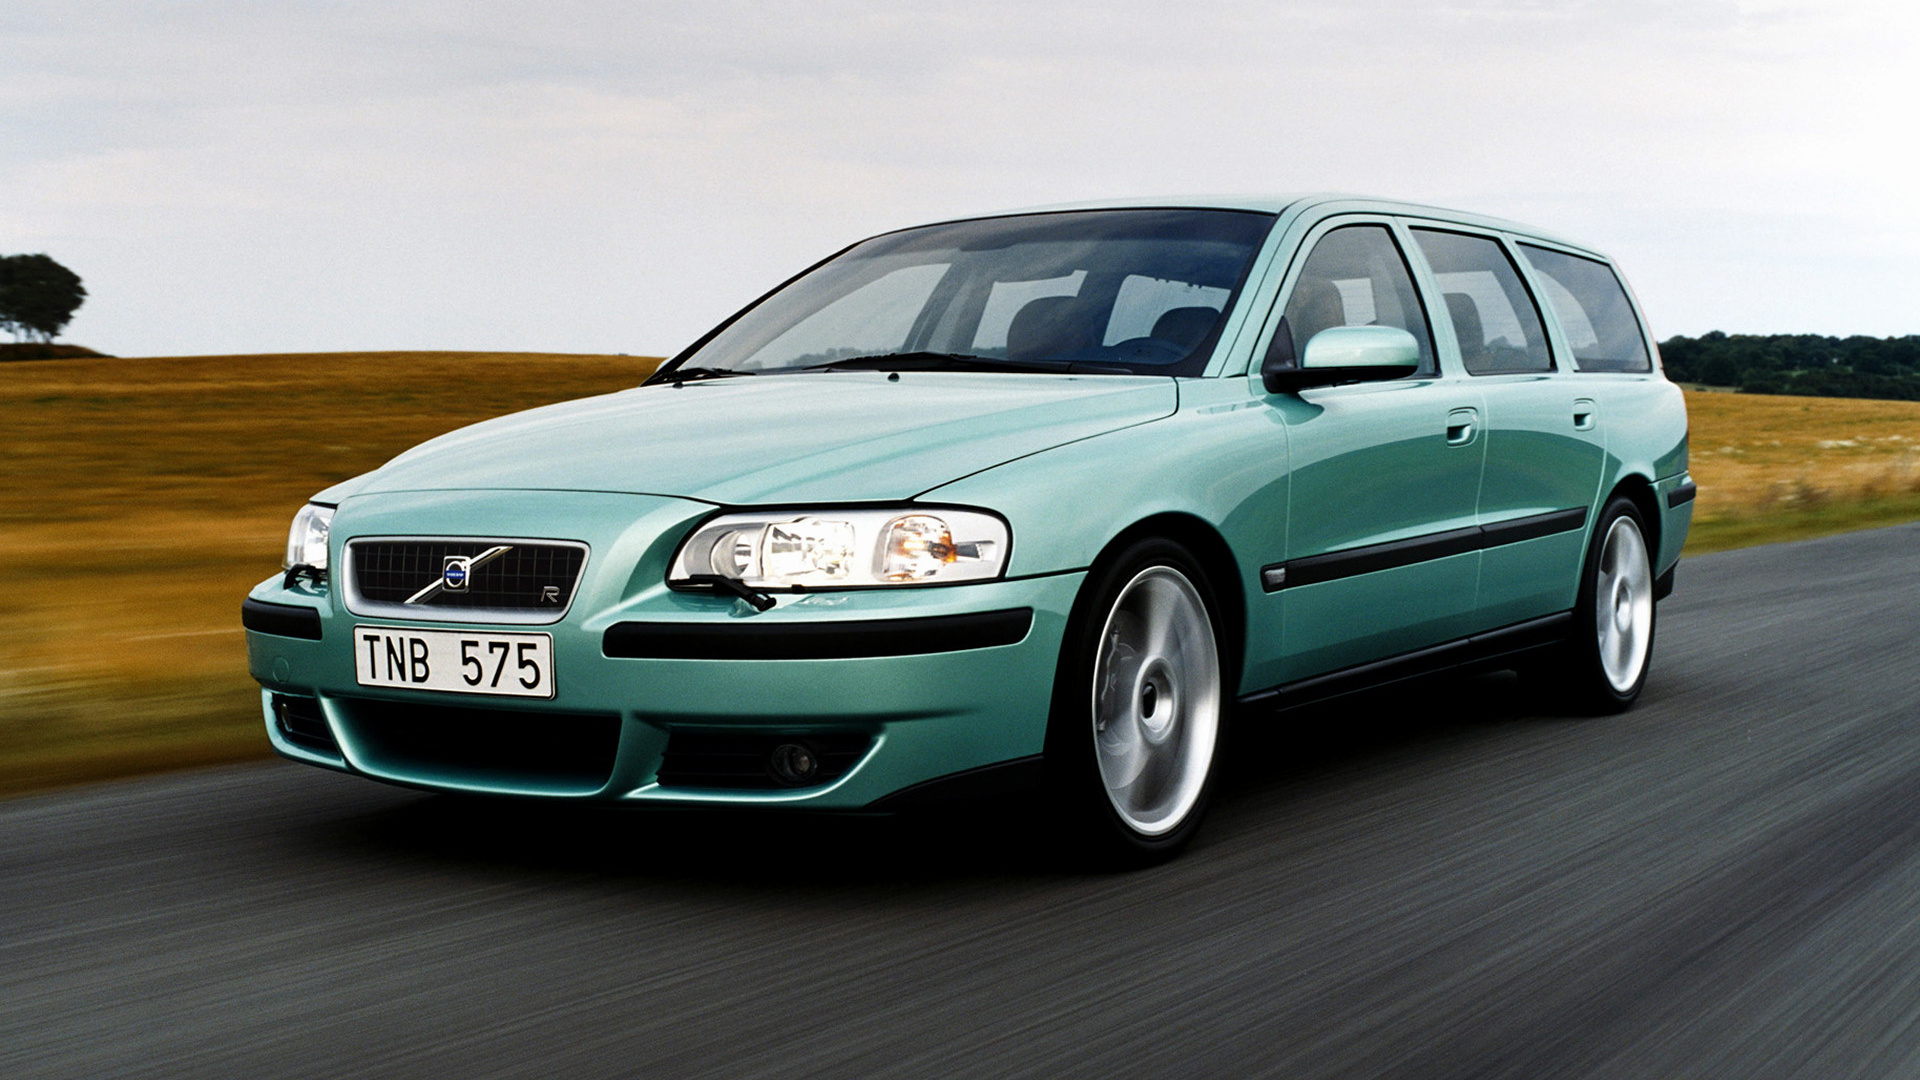 Volvo V70 R (2000) Wallpapers and HD Images - Car Pixel